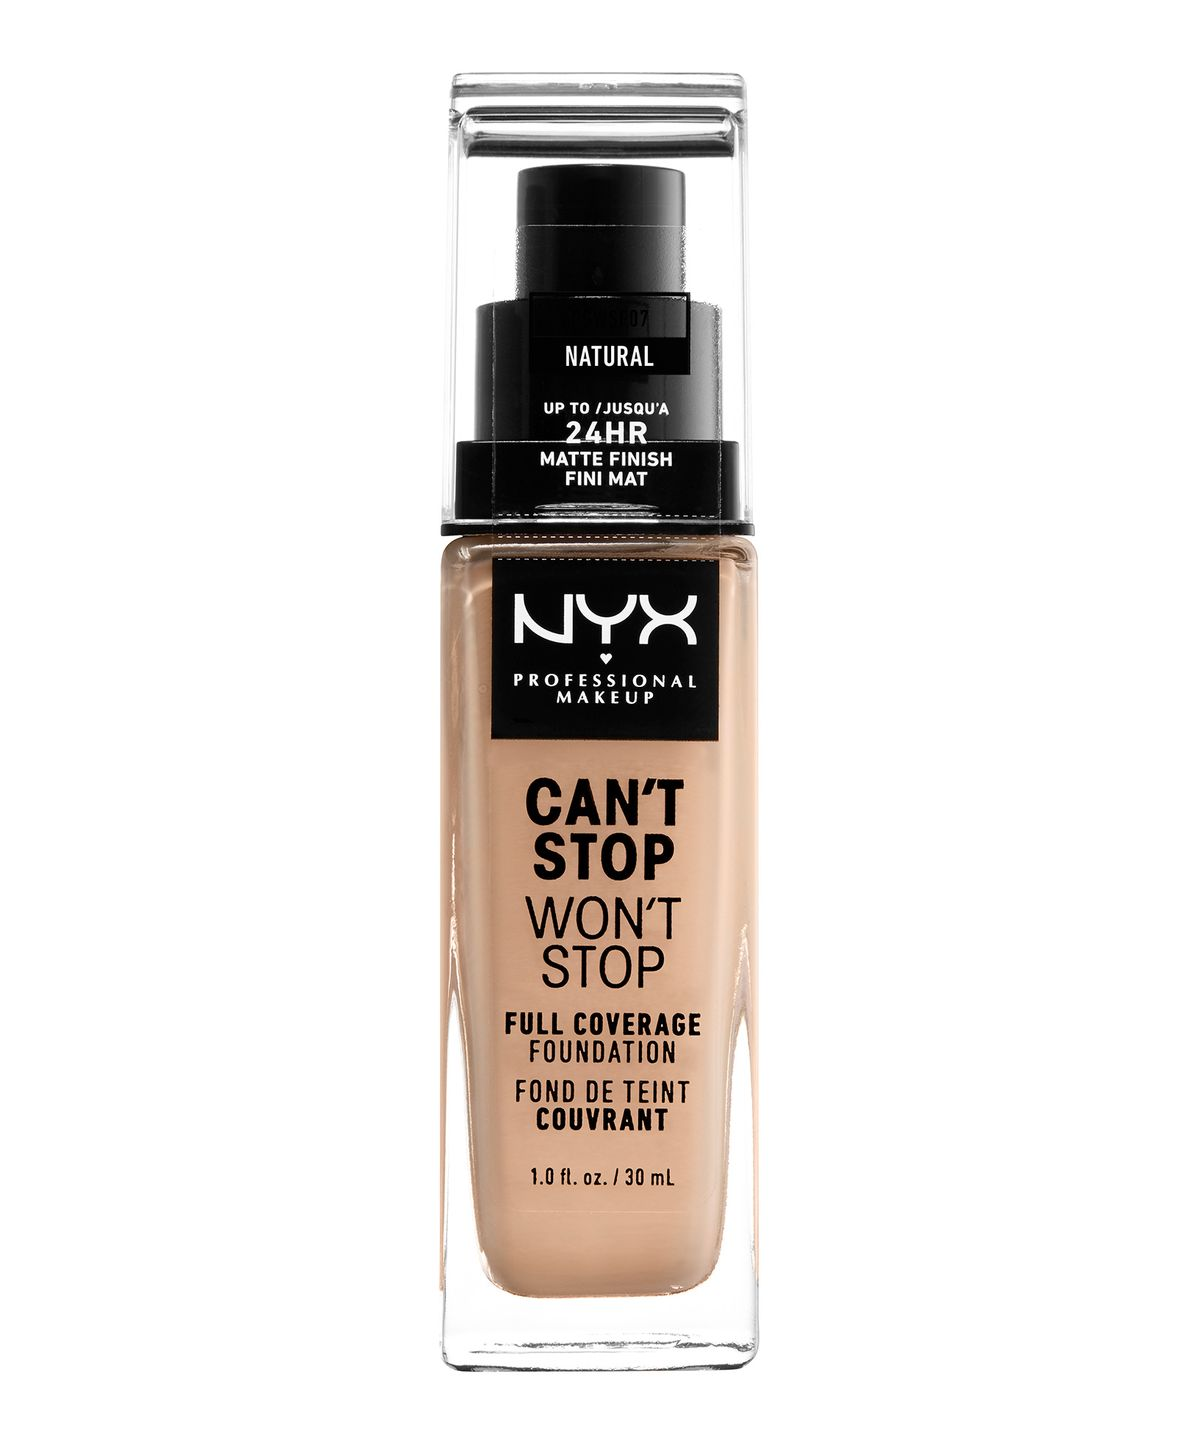 CANT STOP WONT STOP 24HR FOUNDATION NATURAL - NYX PROFESSIONAL MAKEUP